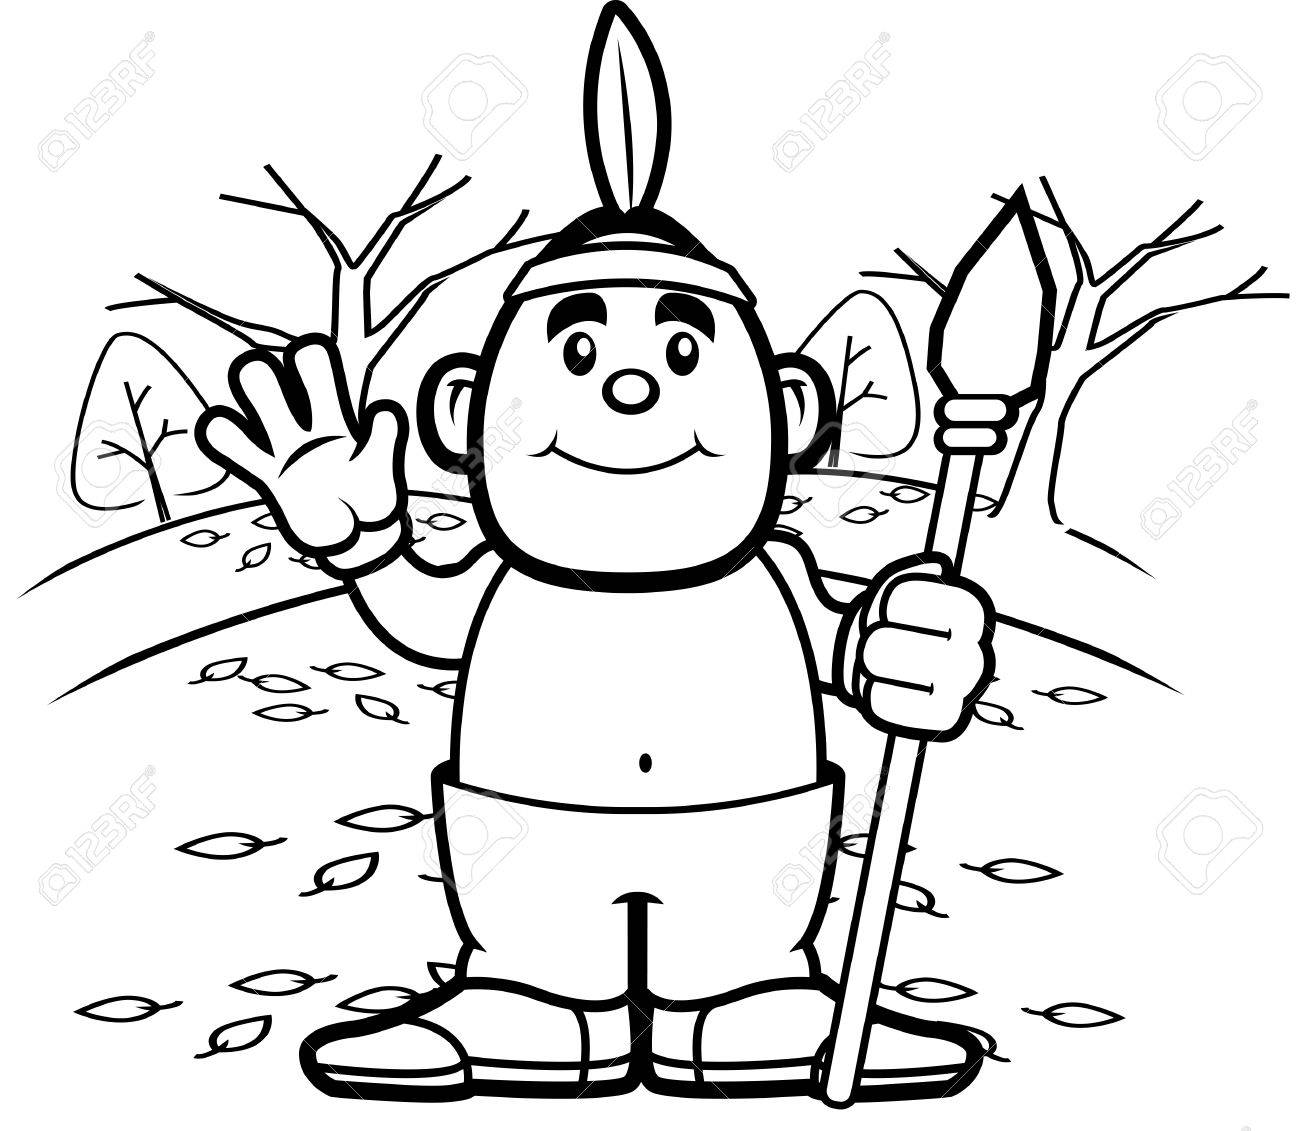 Native American Cartoon Drawing